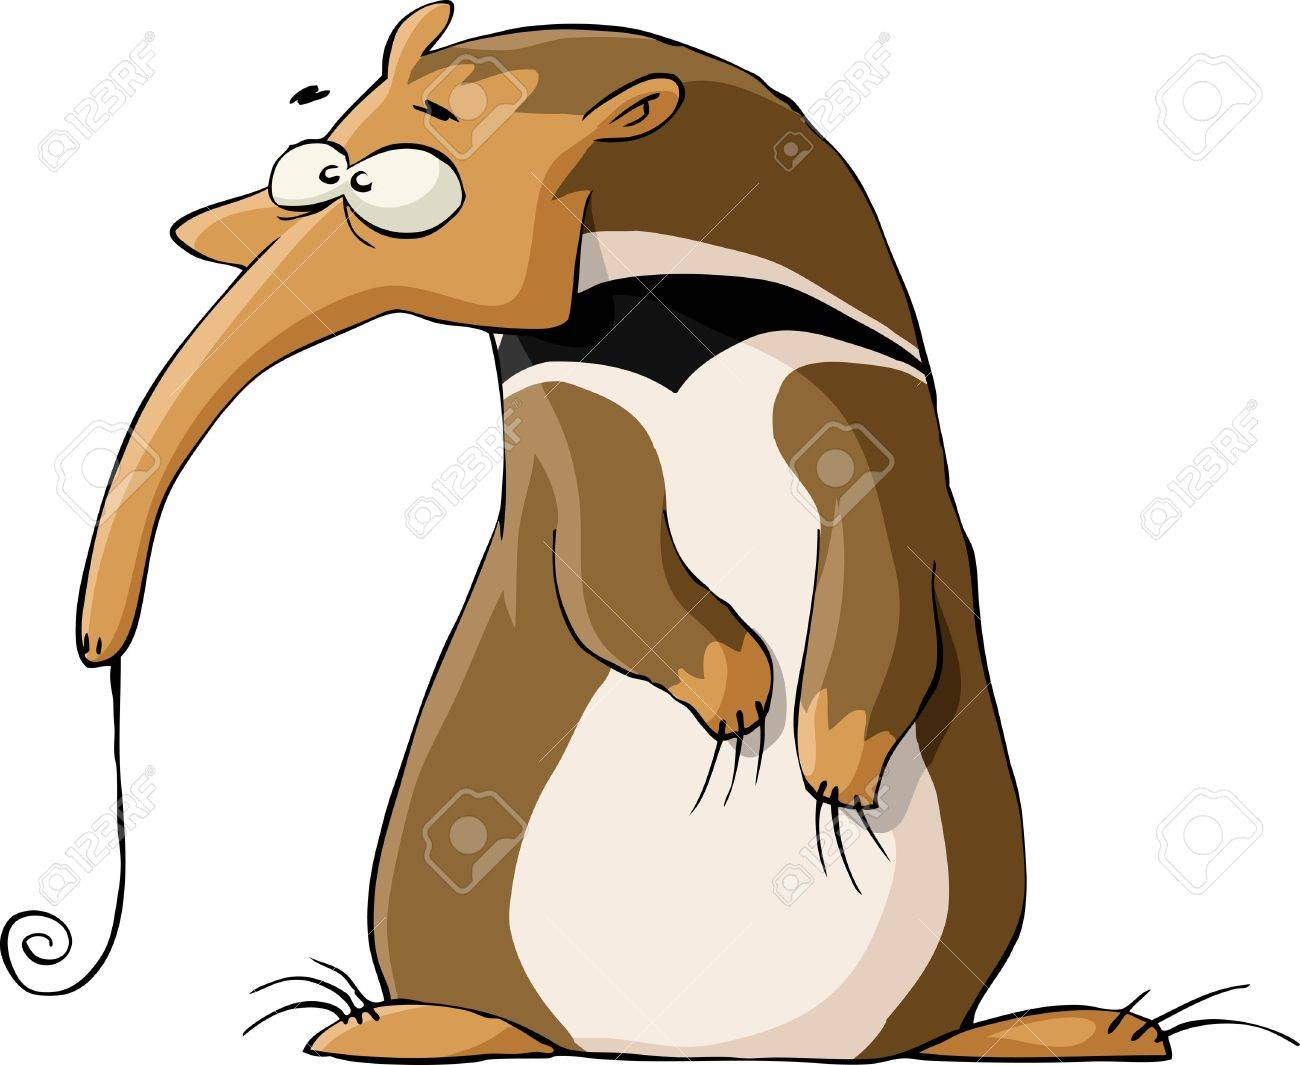 Ant-eater on a white background, vector illustration Stock Vector - 10554369